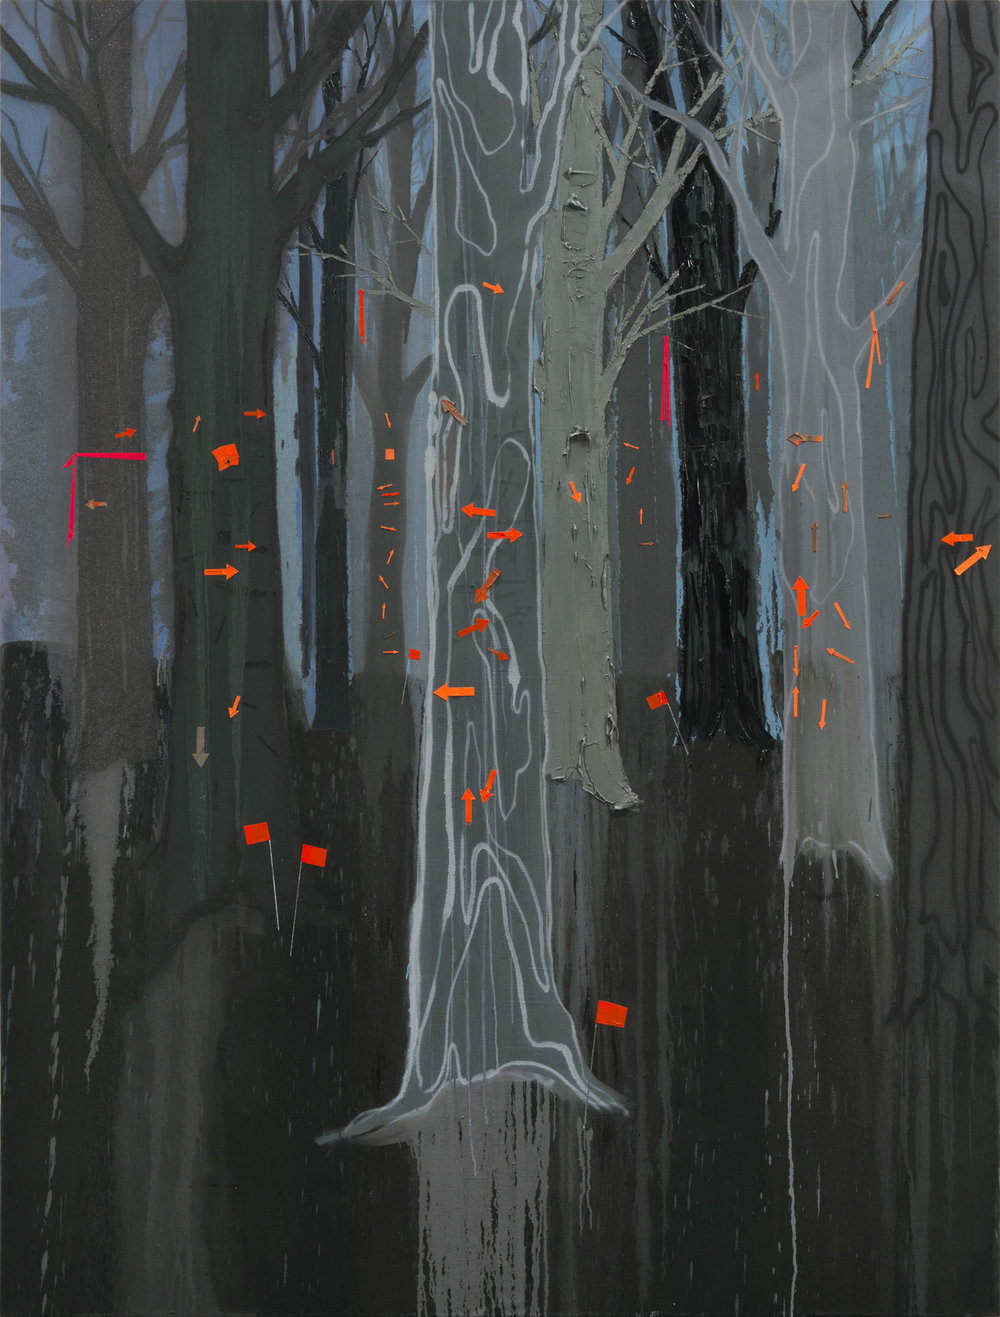 """Kim Dorland - All Ideas are Wrong , 2017/18, oil on linen,96"""" x 73"""".Image courtesy Arsenal Contemporary."""